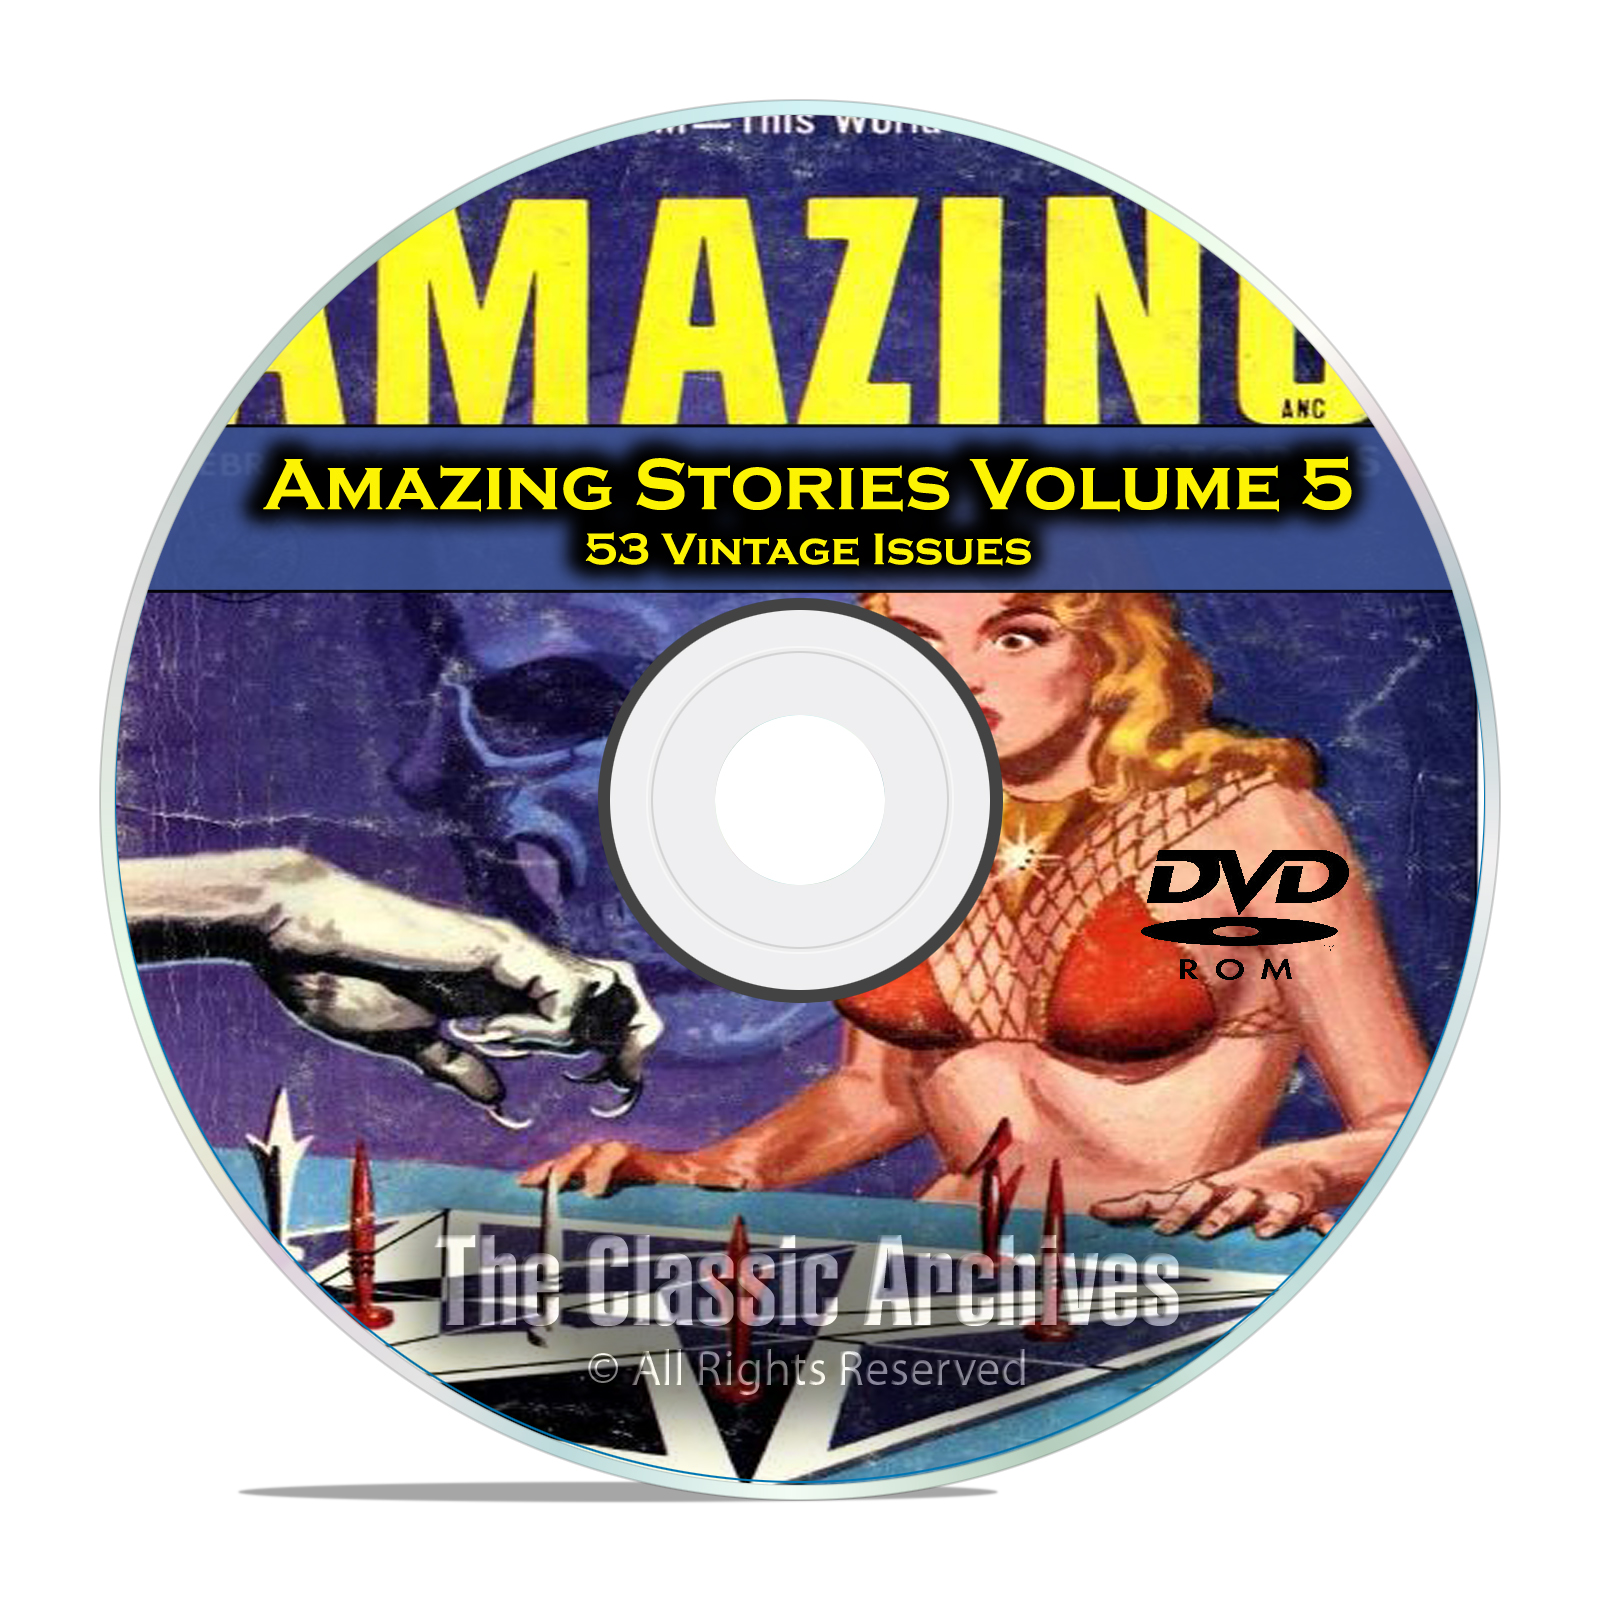 Amazing Stories Vol 5, 53 Vintage Pulp Magazine Fiction, Hugo Gernsbeck DVD